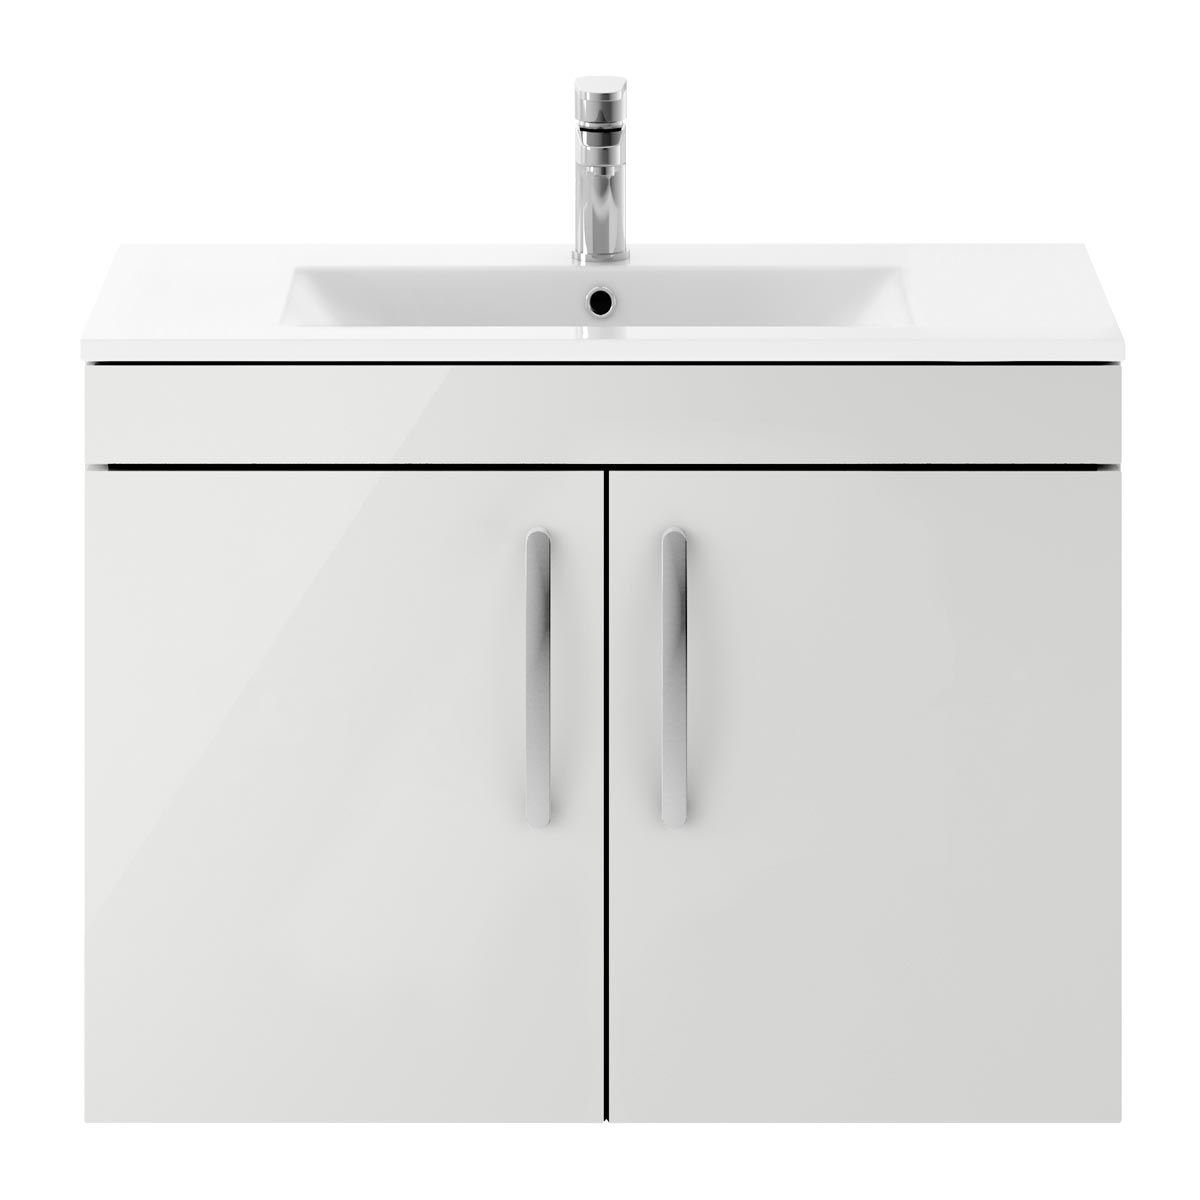 Nuie Athena Gloss Grey Mist 2 Door Wall Hung Vanity Unit with 18mm Profile Basin 800mm